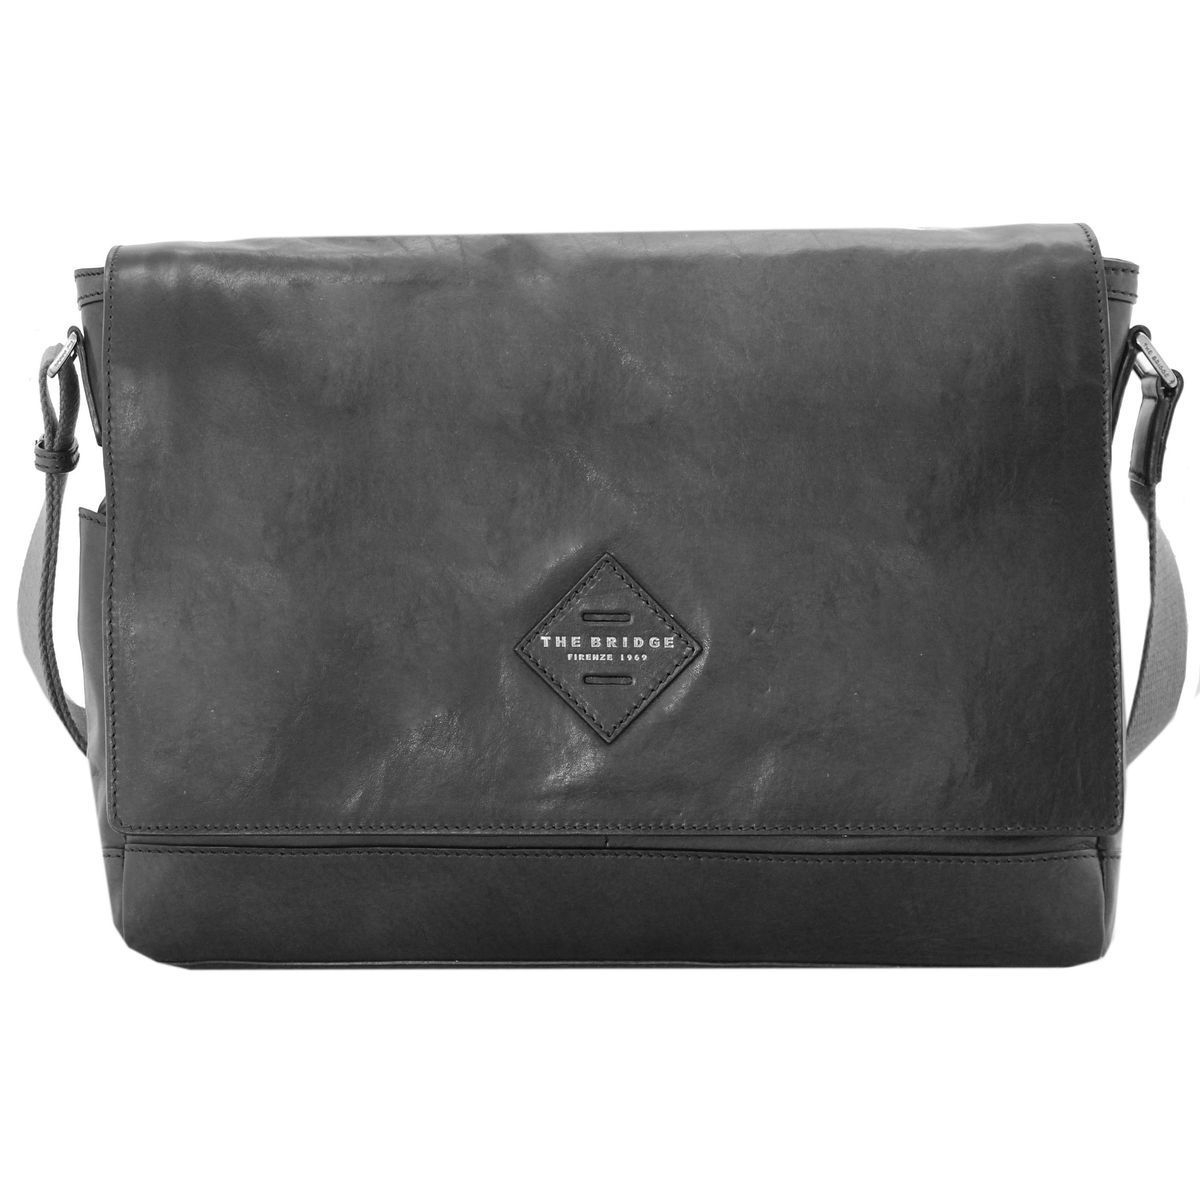 The Bridge Patch Luxe Umhängetasche 36 cm, black